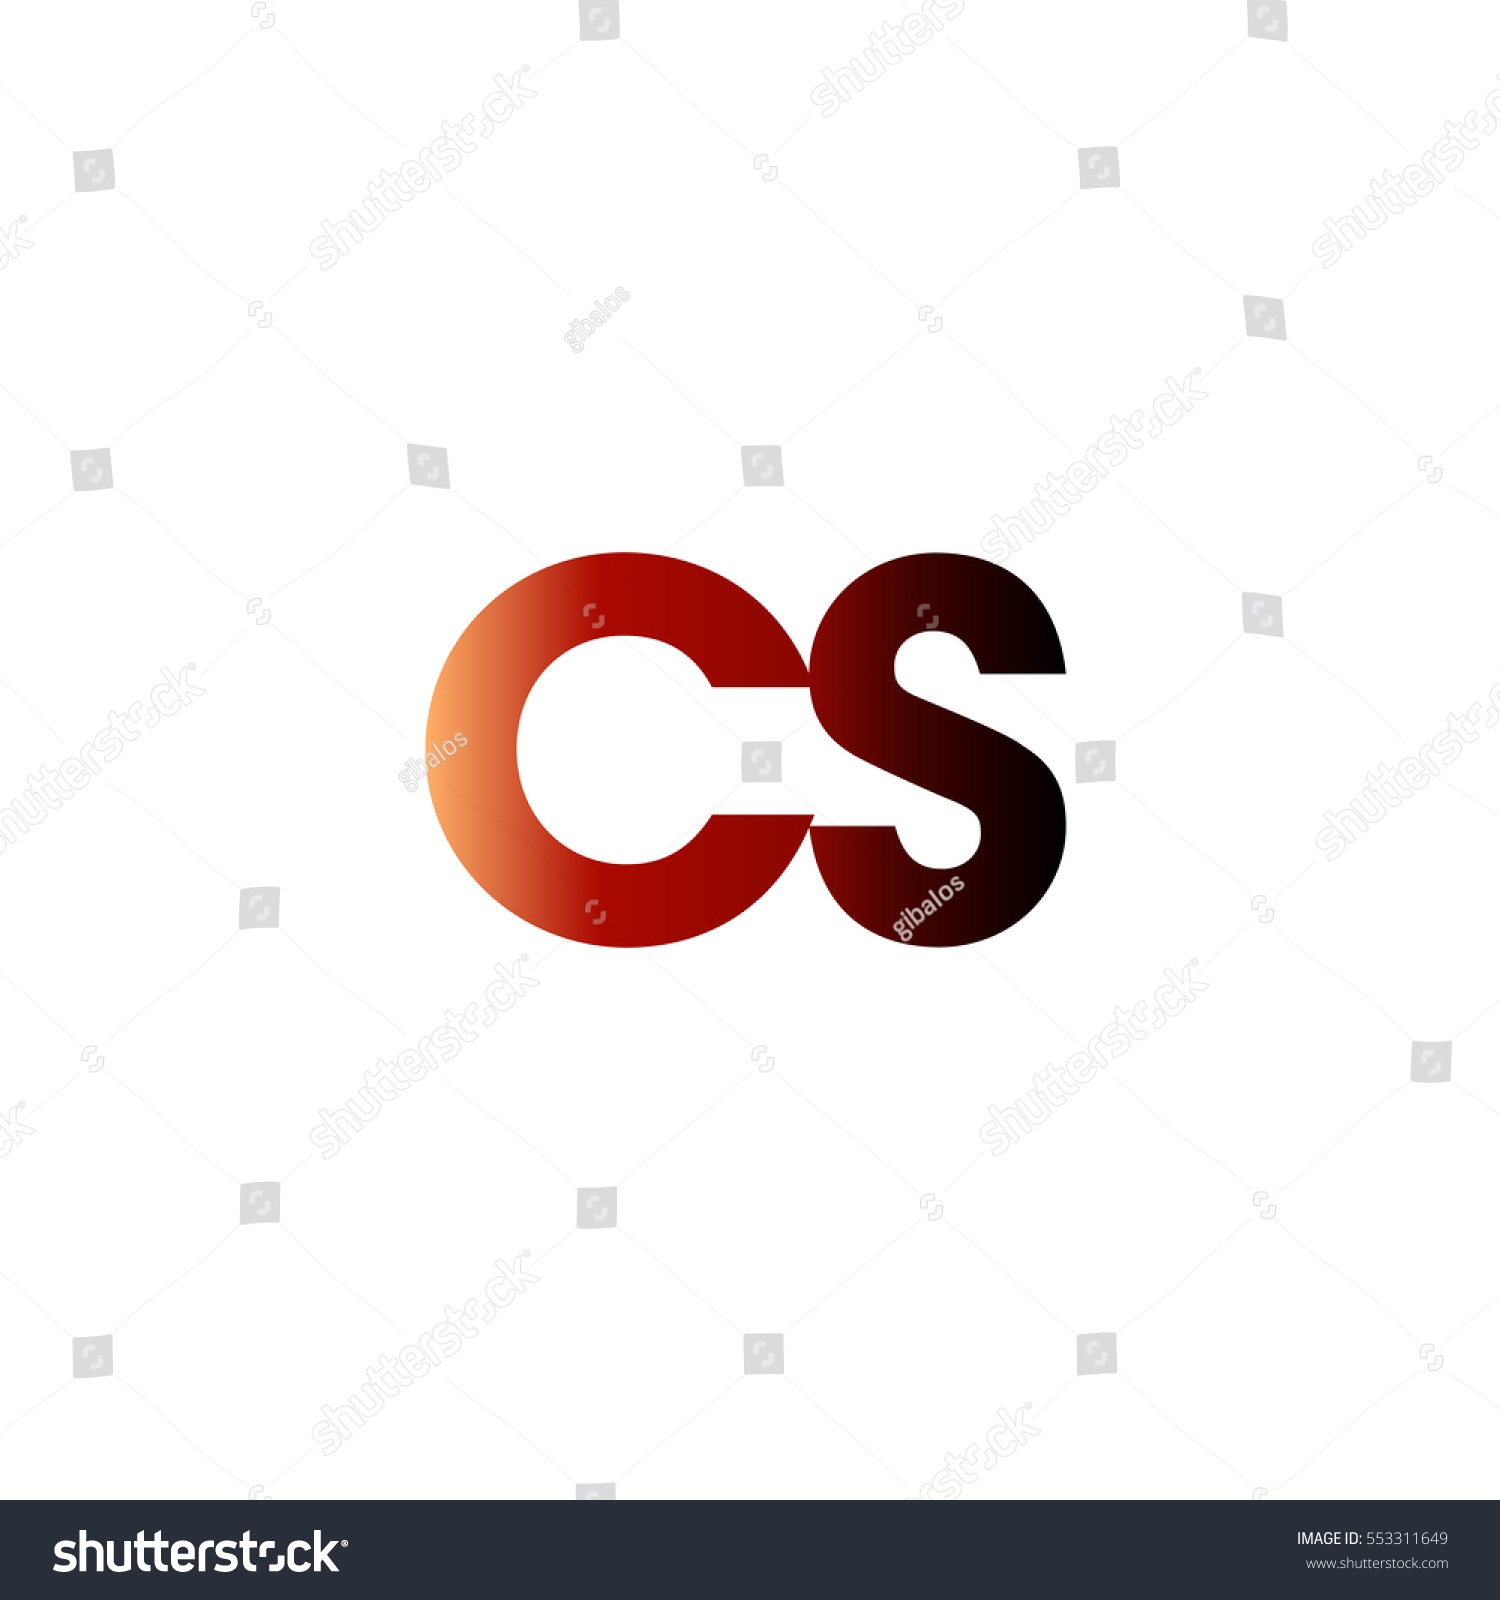 8 cs of business letter 8 c's of a business letter clarity the first element of all business letters is that  they should be clear this includes the purpose of the letter and.